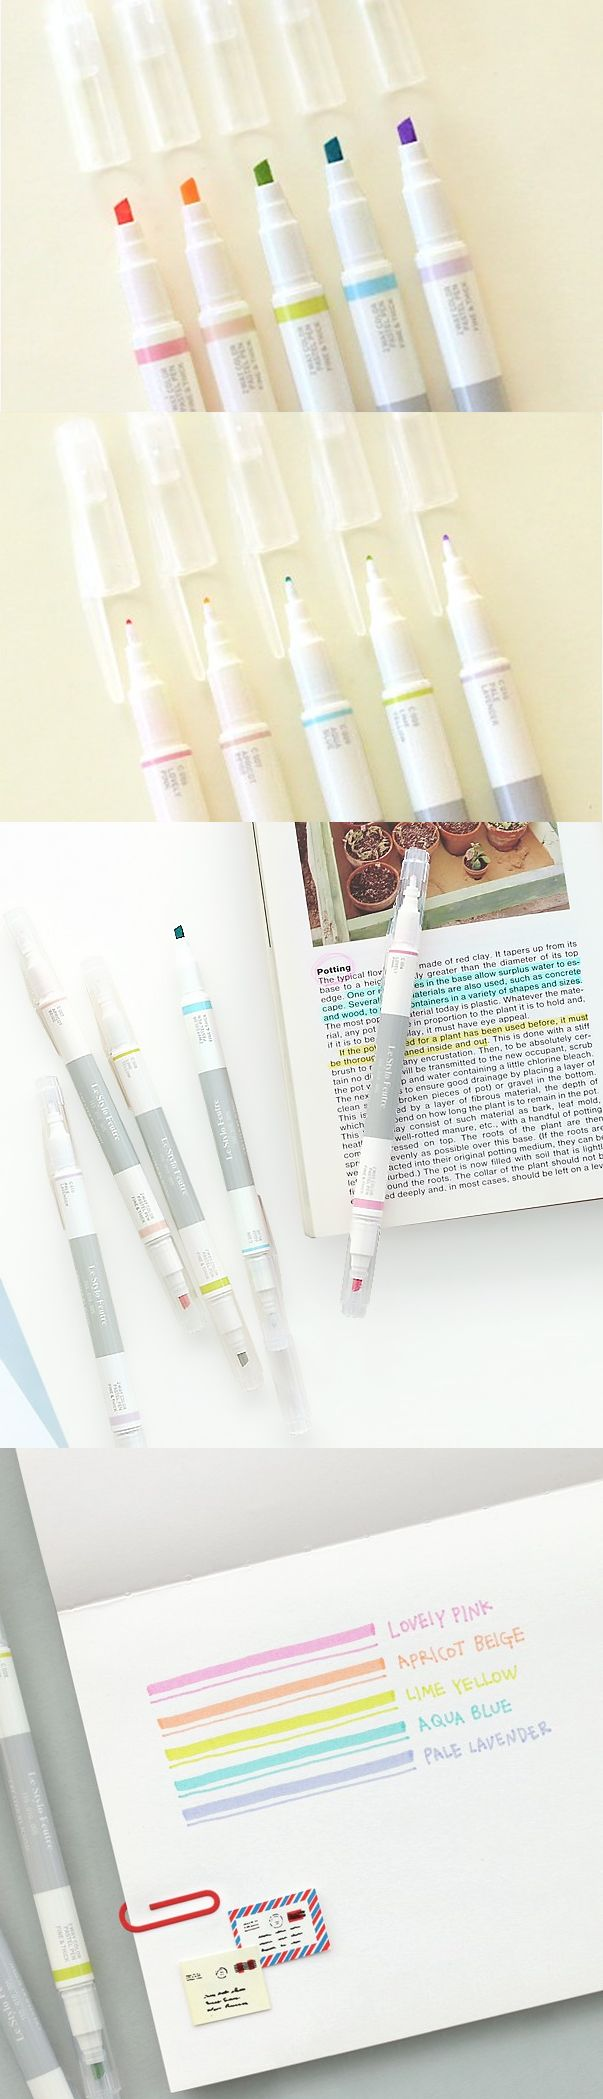 Whoa! Check out this dual sided pen! One side has a fine tip for writing and the other side has a thicker tip for highlighting! This pen set includes 5 really cute pastel colored pens in Lovely Pink, Apricot Beige, Lime Yellow, and Pale Lavender! These pens are very handy for taking notes while also highlighting important keywords, phrases, or any important information! Absolutely essential for school, office, and home.